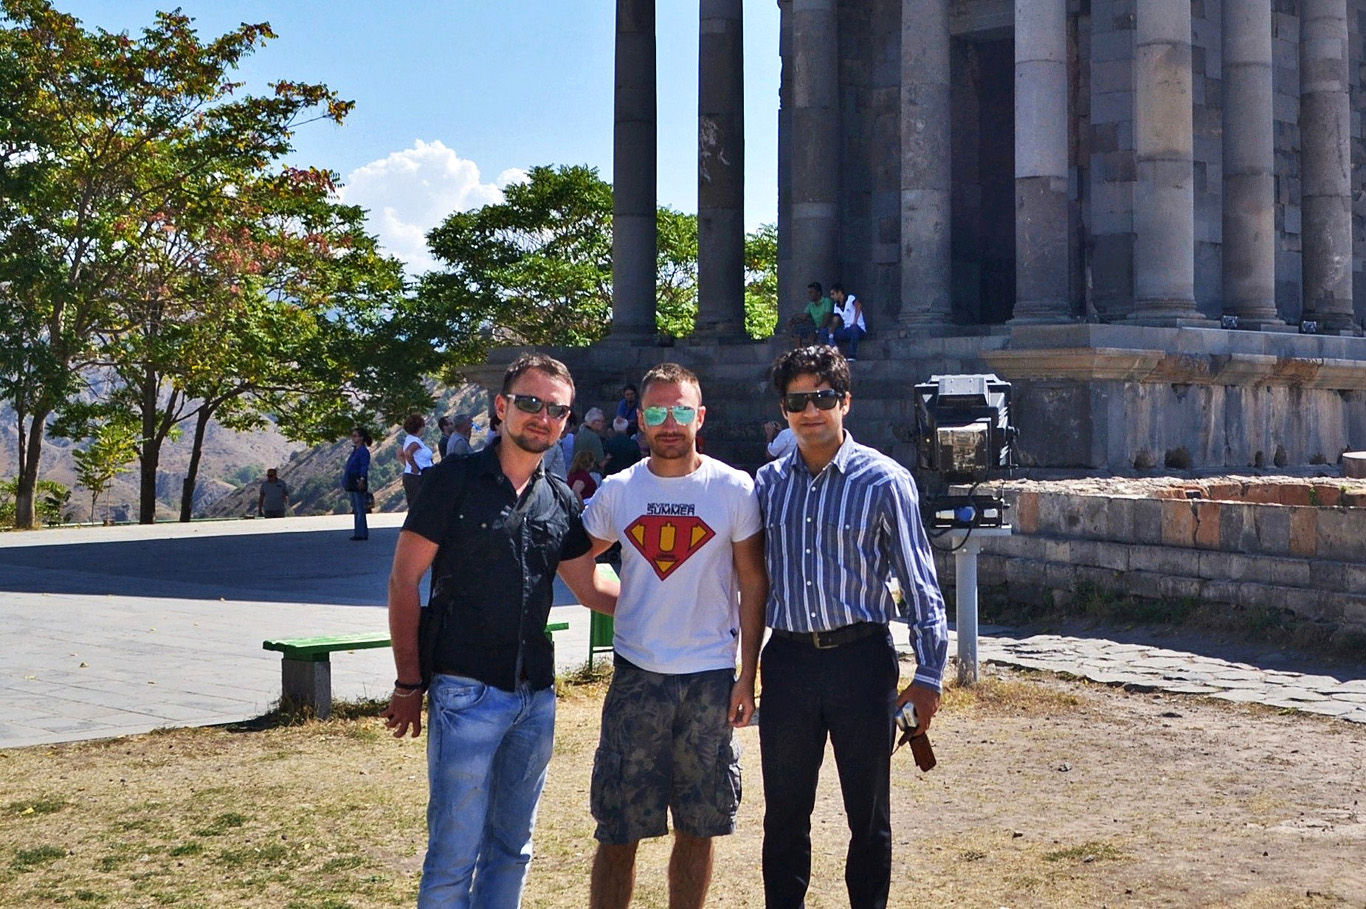 At Garni Temple with friends